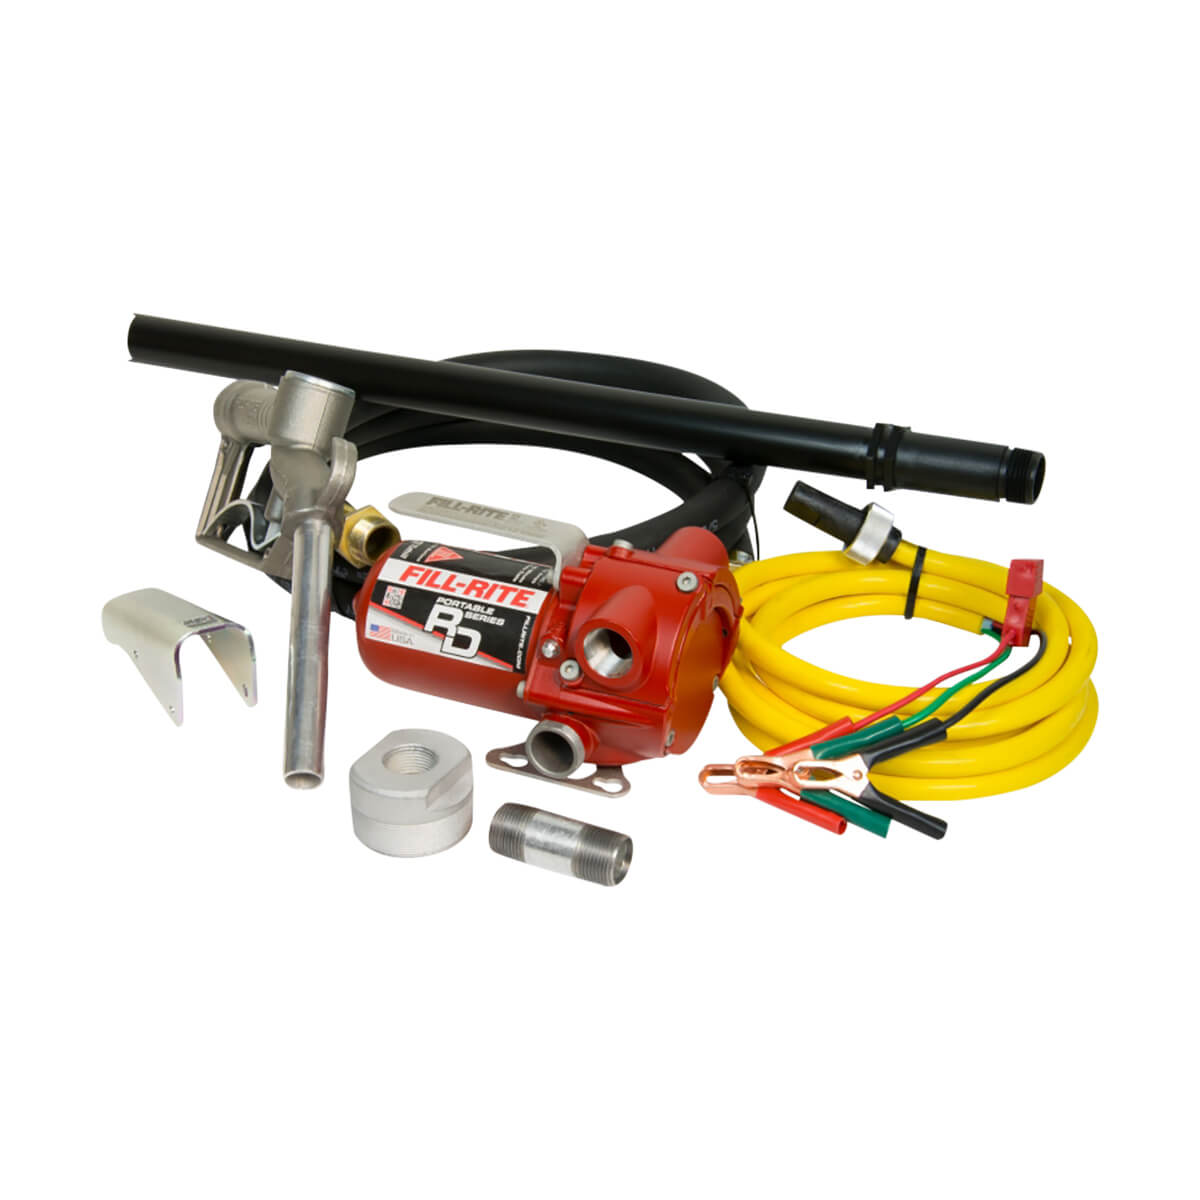 12V DC Bung Mounted Pump with Hose and Nozzle RD1212NP